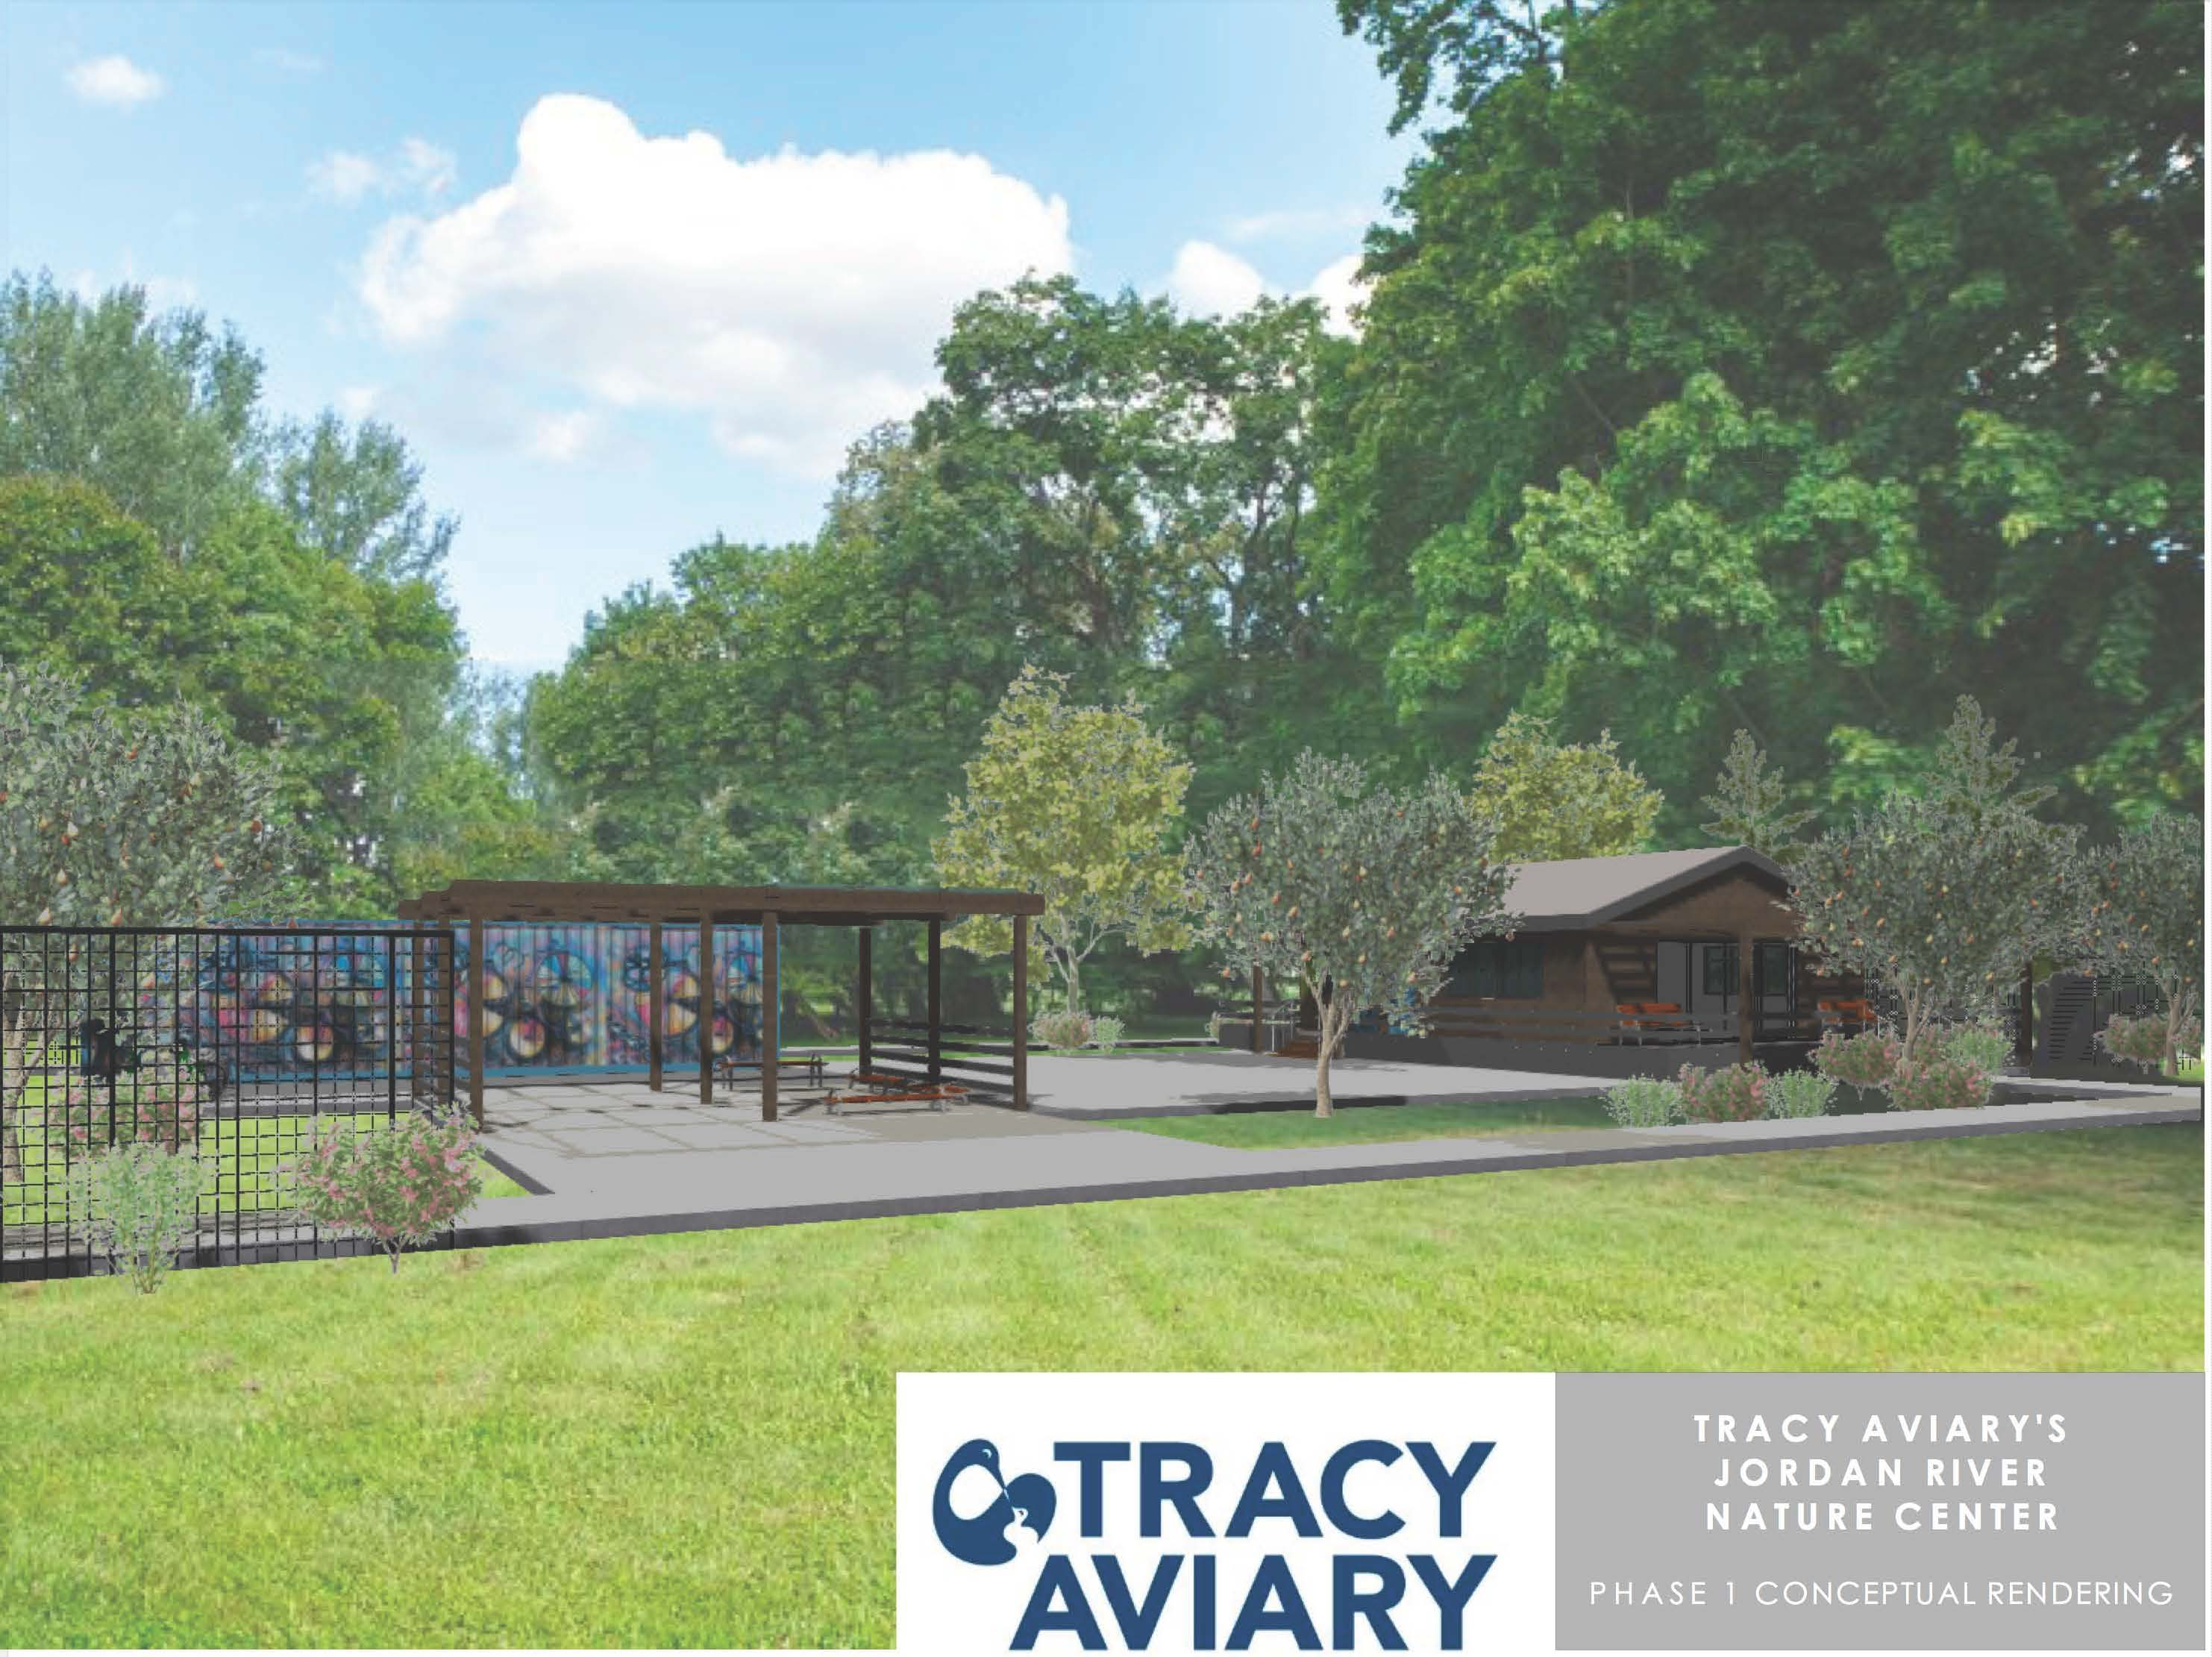 Rendering of transitional campus of Tracy Aviary's Jordan River Nature Center